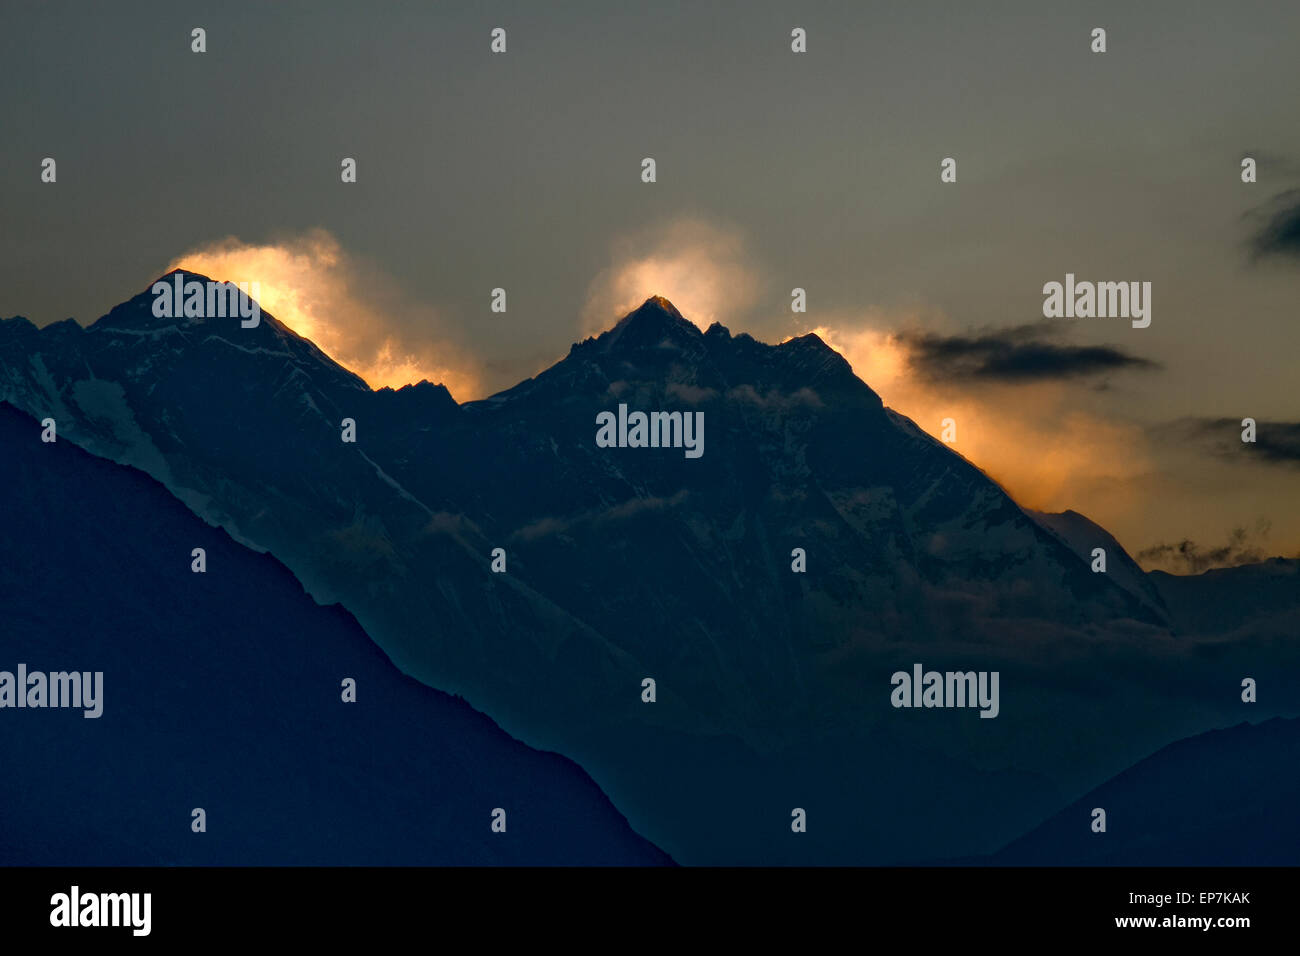 Sun setting behind Mount Everest seen from the Hotel Everest View, Solukhumbu, Nepal at 13000 feet high - Stock Image